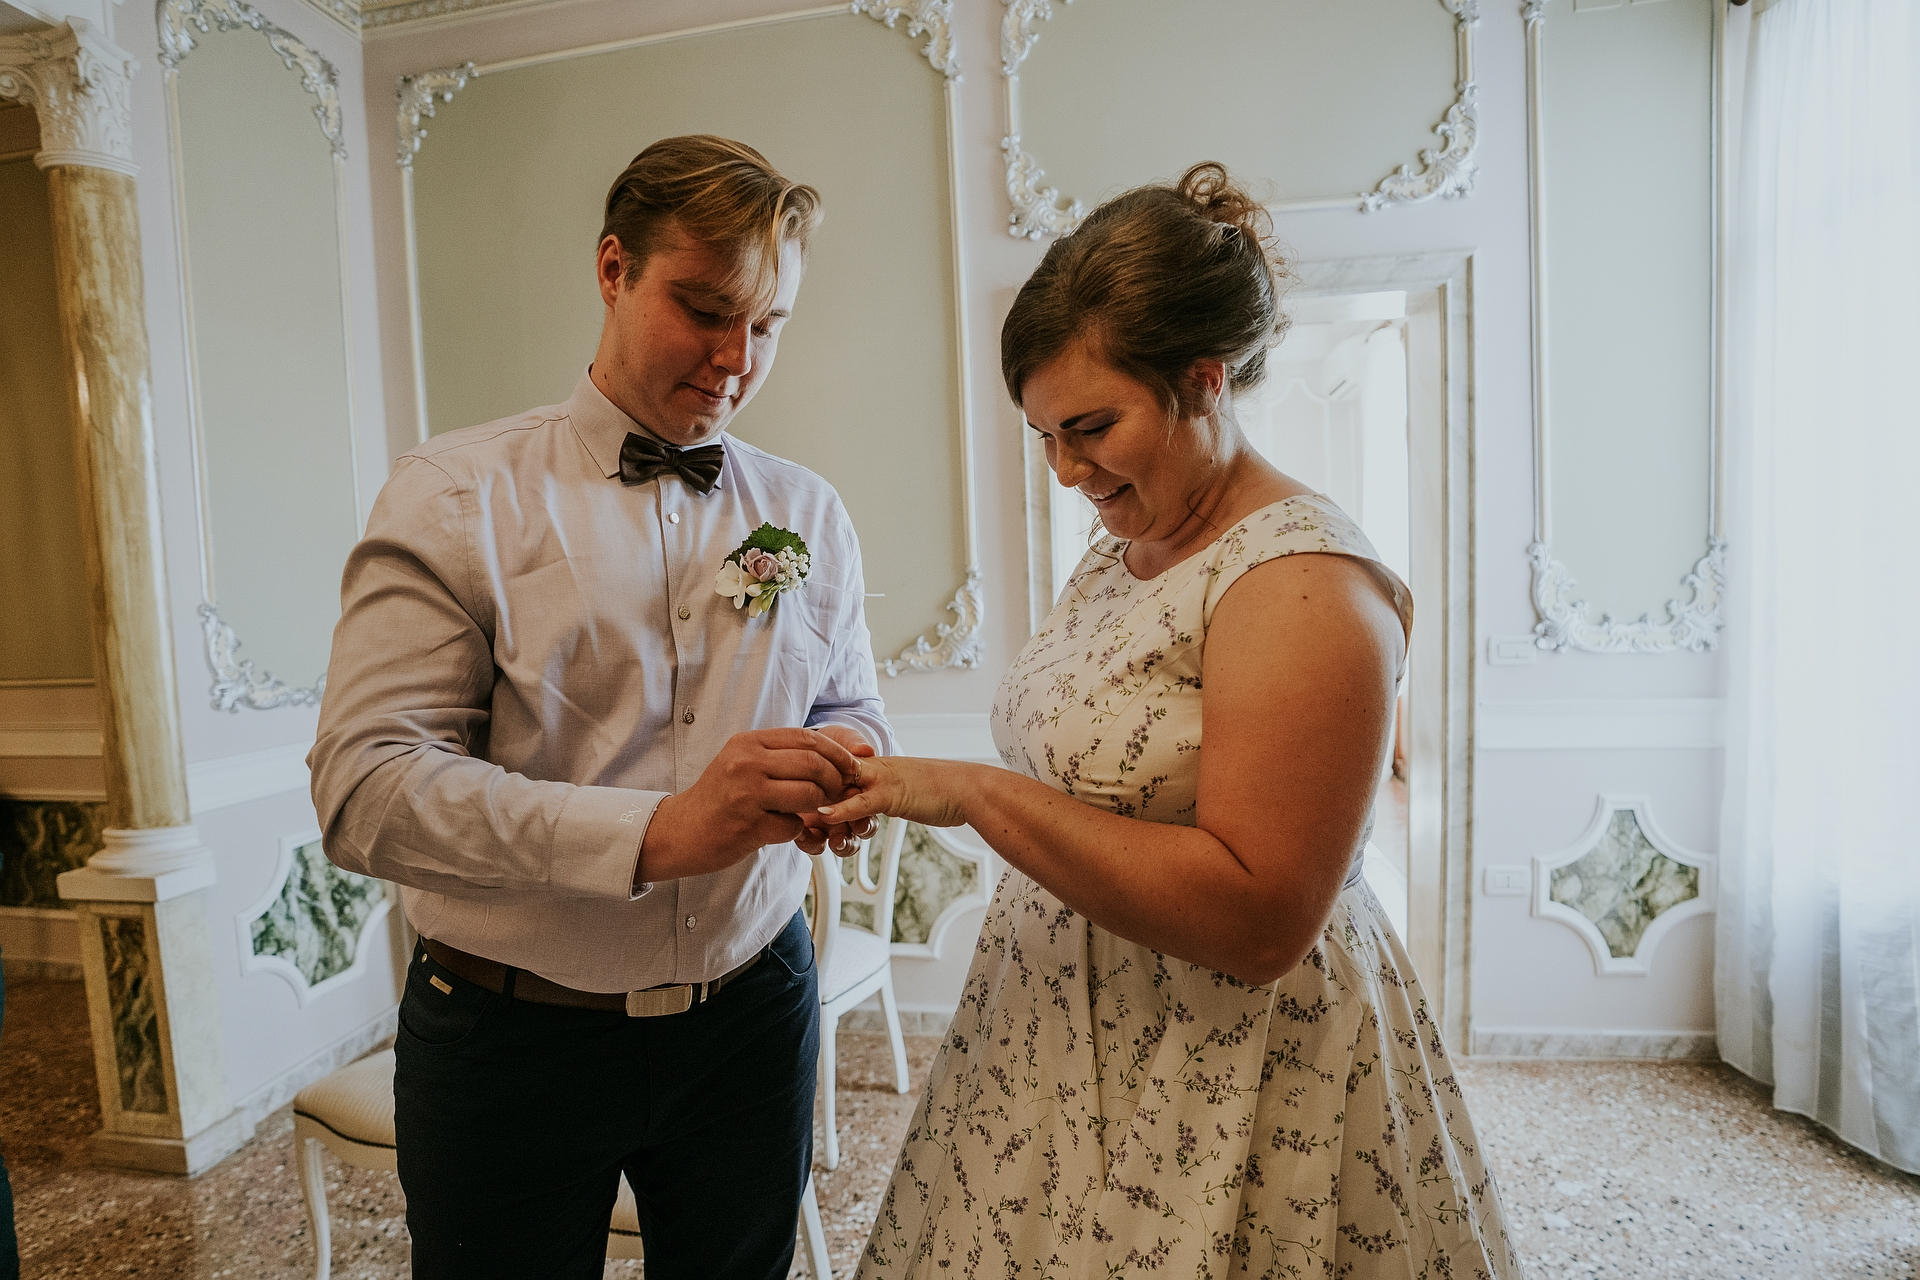 Palazzo Goldoni Elopement Ring Ceremony Image | The intimate exchange of the rings